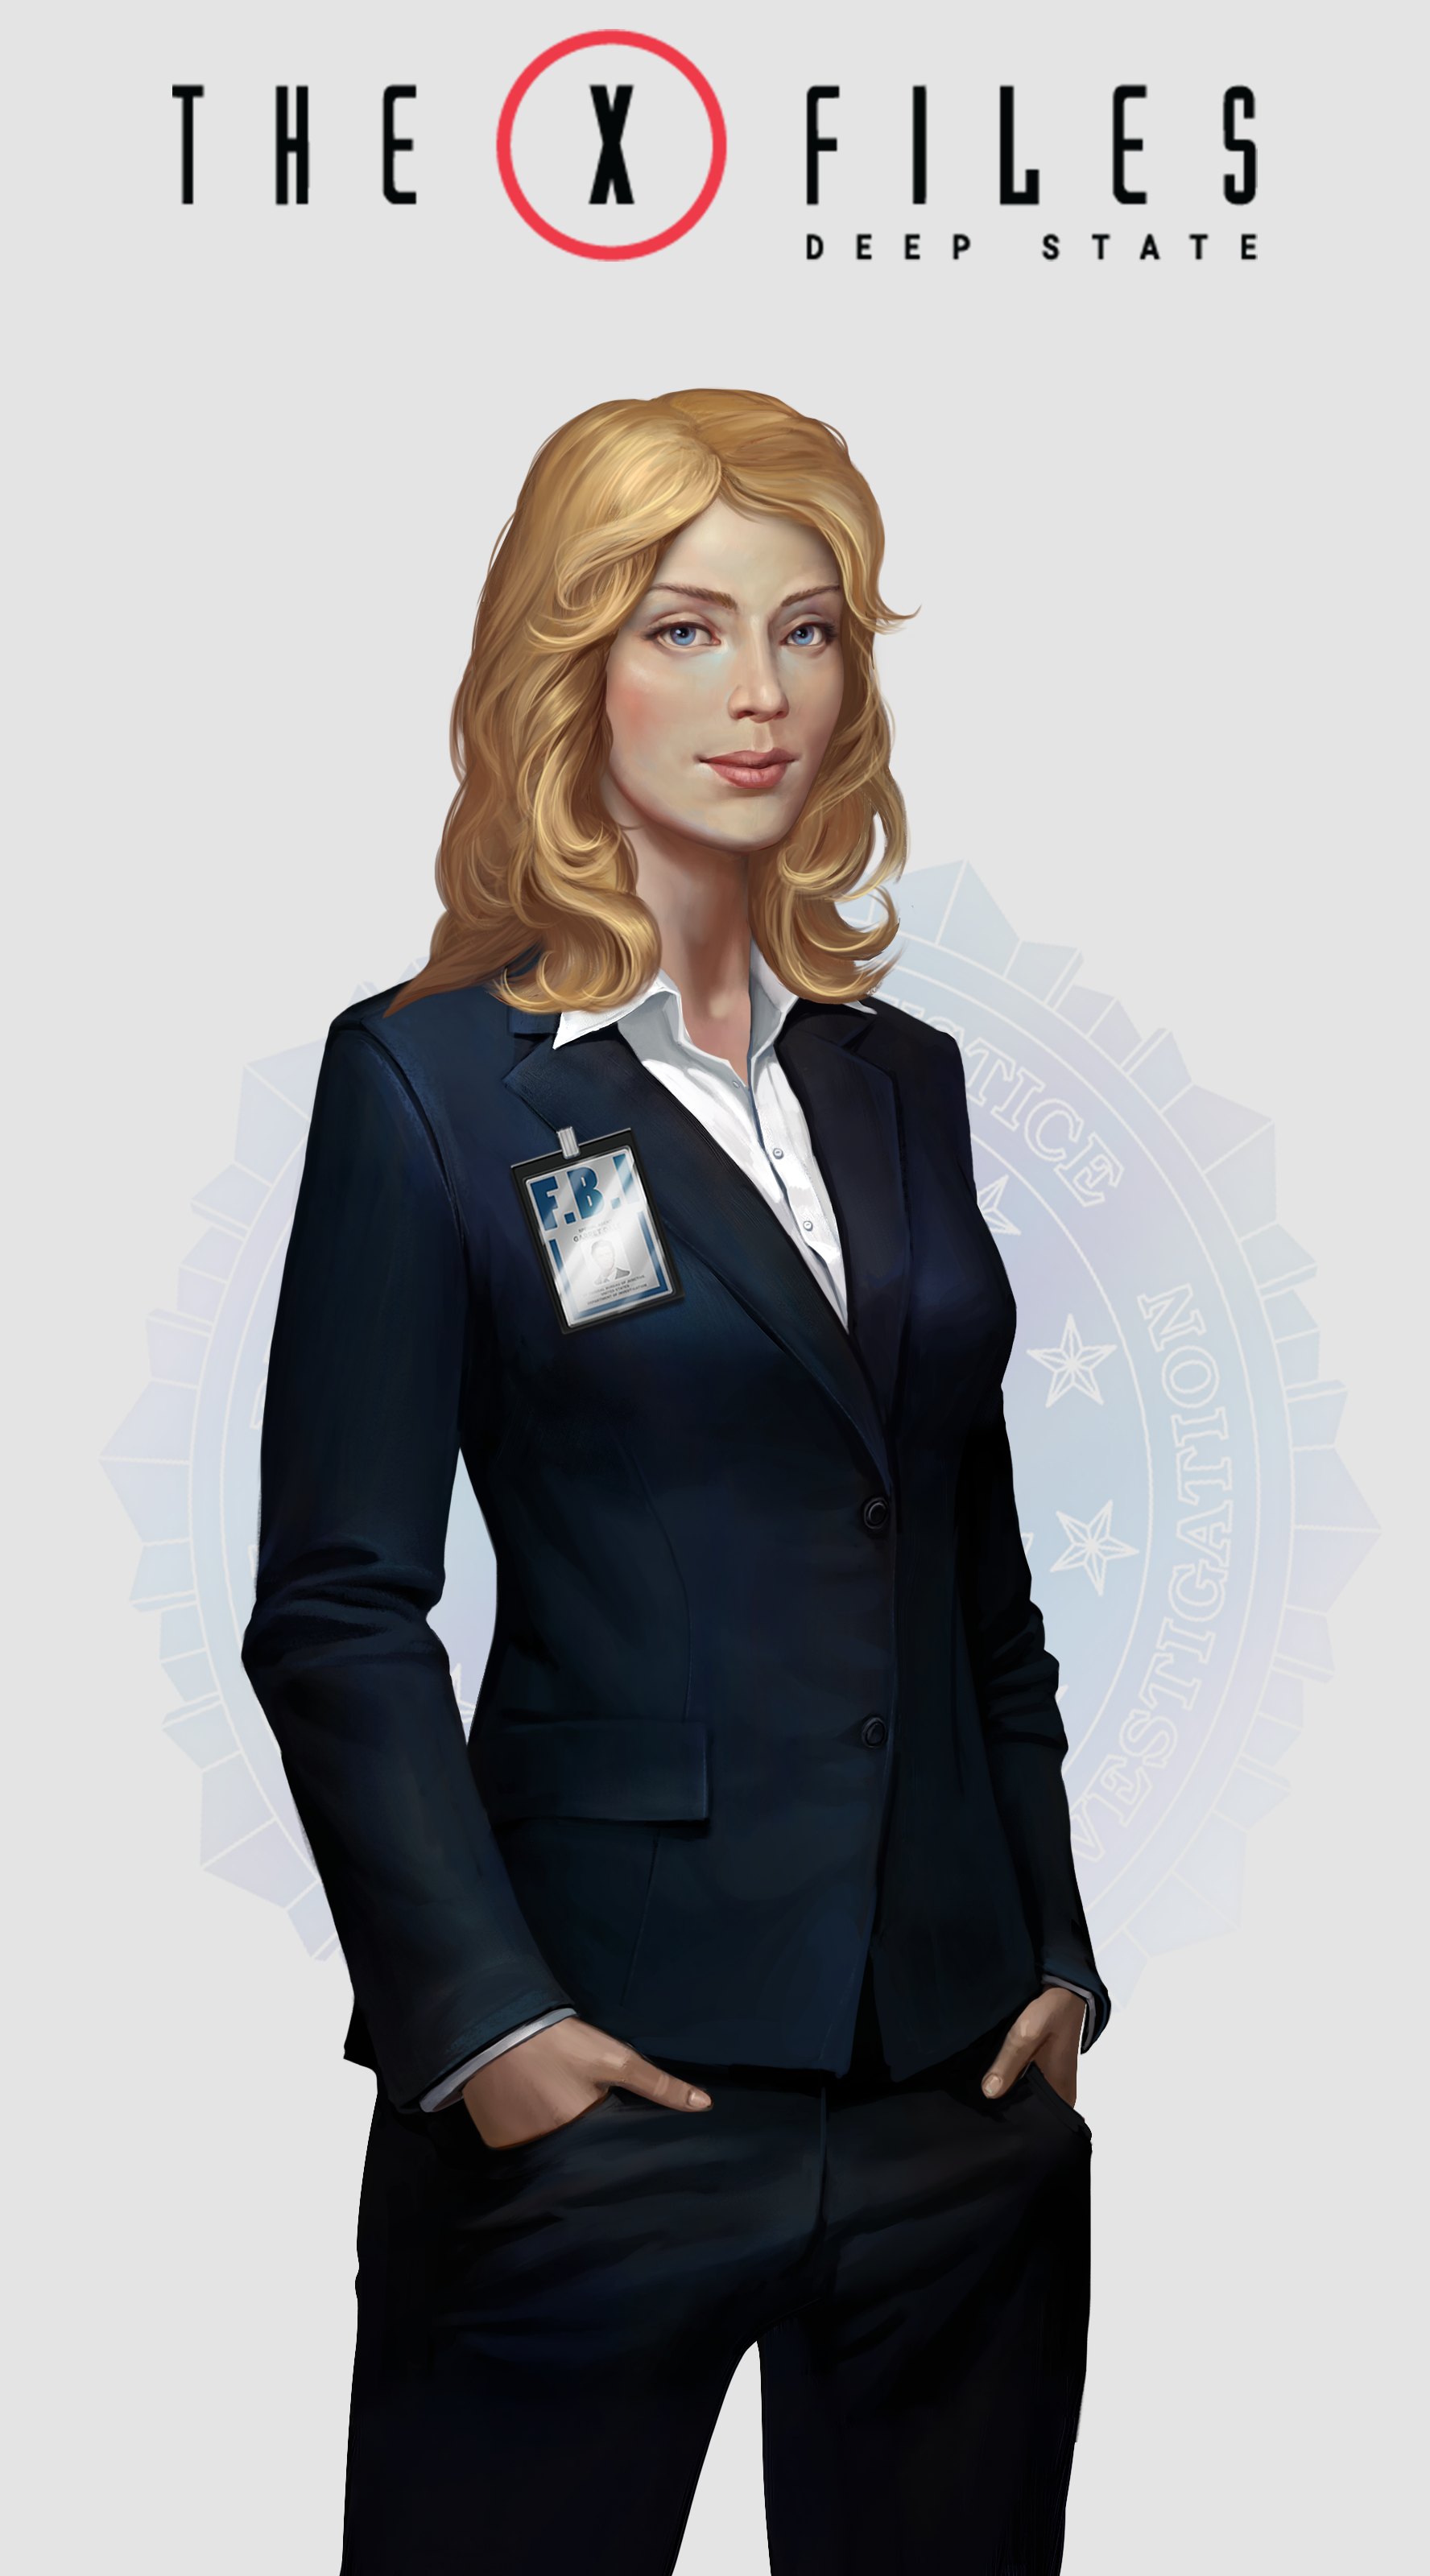 Fbi Female Woman Agent Xfiles Xfilesgame Blonde